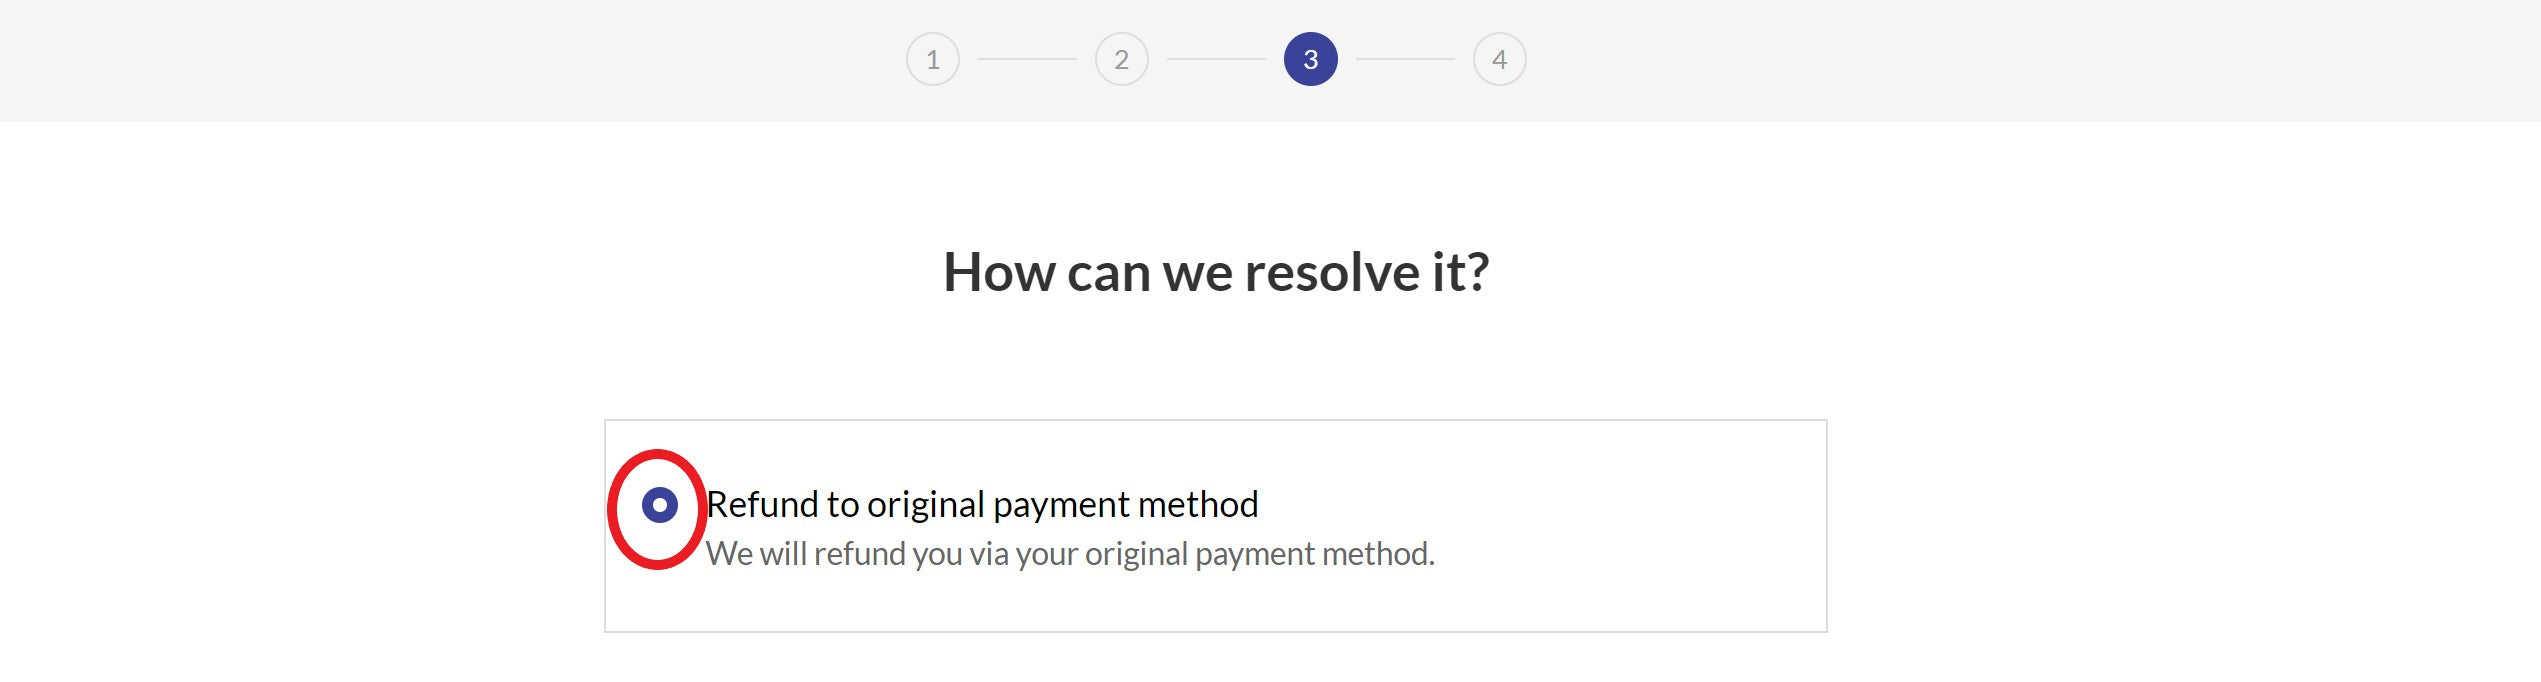 refund method